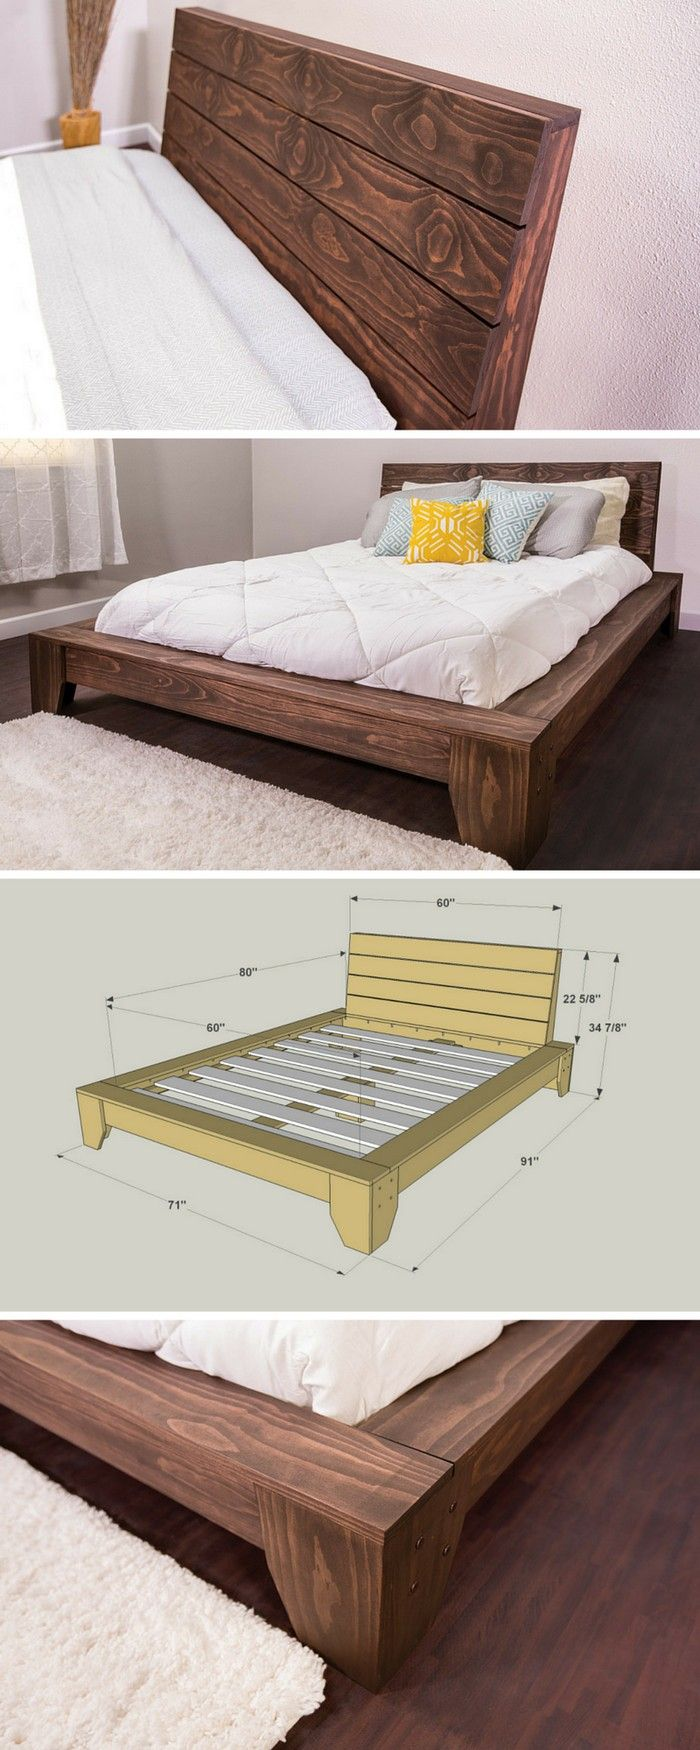 Diy Pallet Queen Platform Bed I Have Presented A List Of Diy Bed Frame To Make Your Bedroom Fabulous All Of Them Are Easy Bett Ideen Bettrahmen Ideen Diy Bett